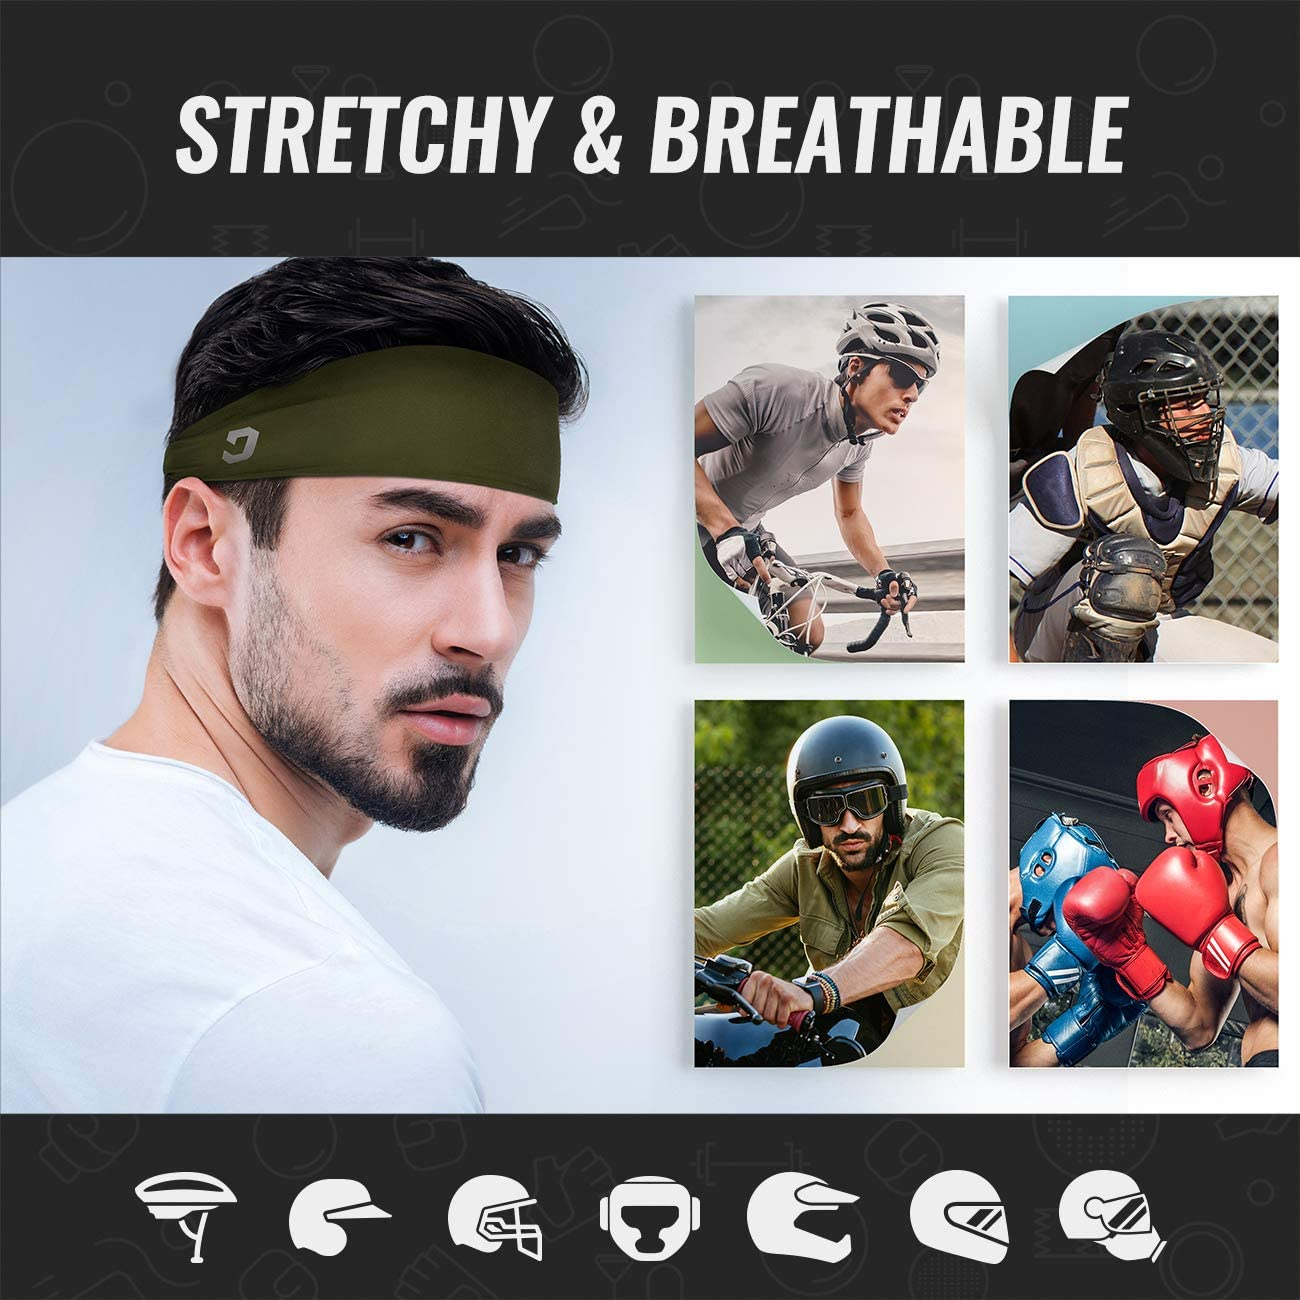 Vinsguir Sports Headbands for Men and Women (4 Pack) - Sweat Band Moisture Wicking Workout Sweatbands for Running, Cross Training, Yoga and Bike - Unisex Hairband (4 Color(Black,Blue,Gray,DarkGreen)) : Sports & Outdoors